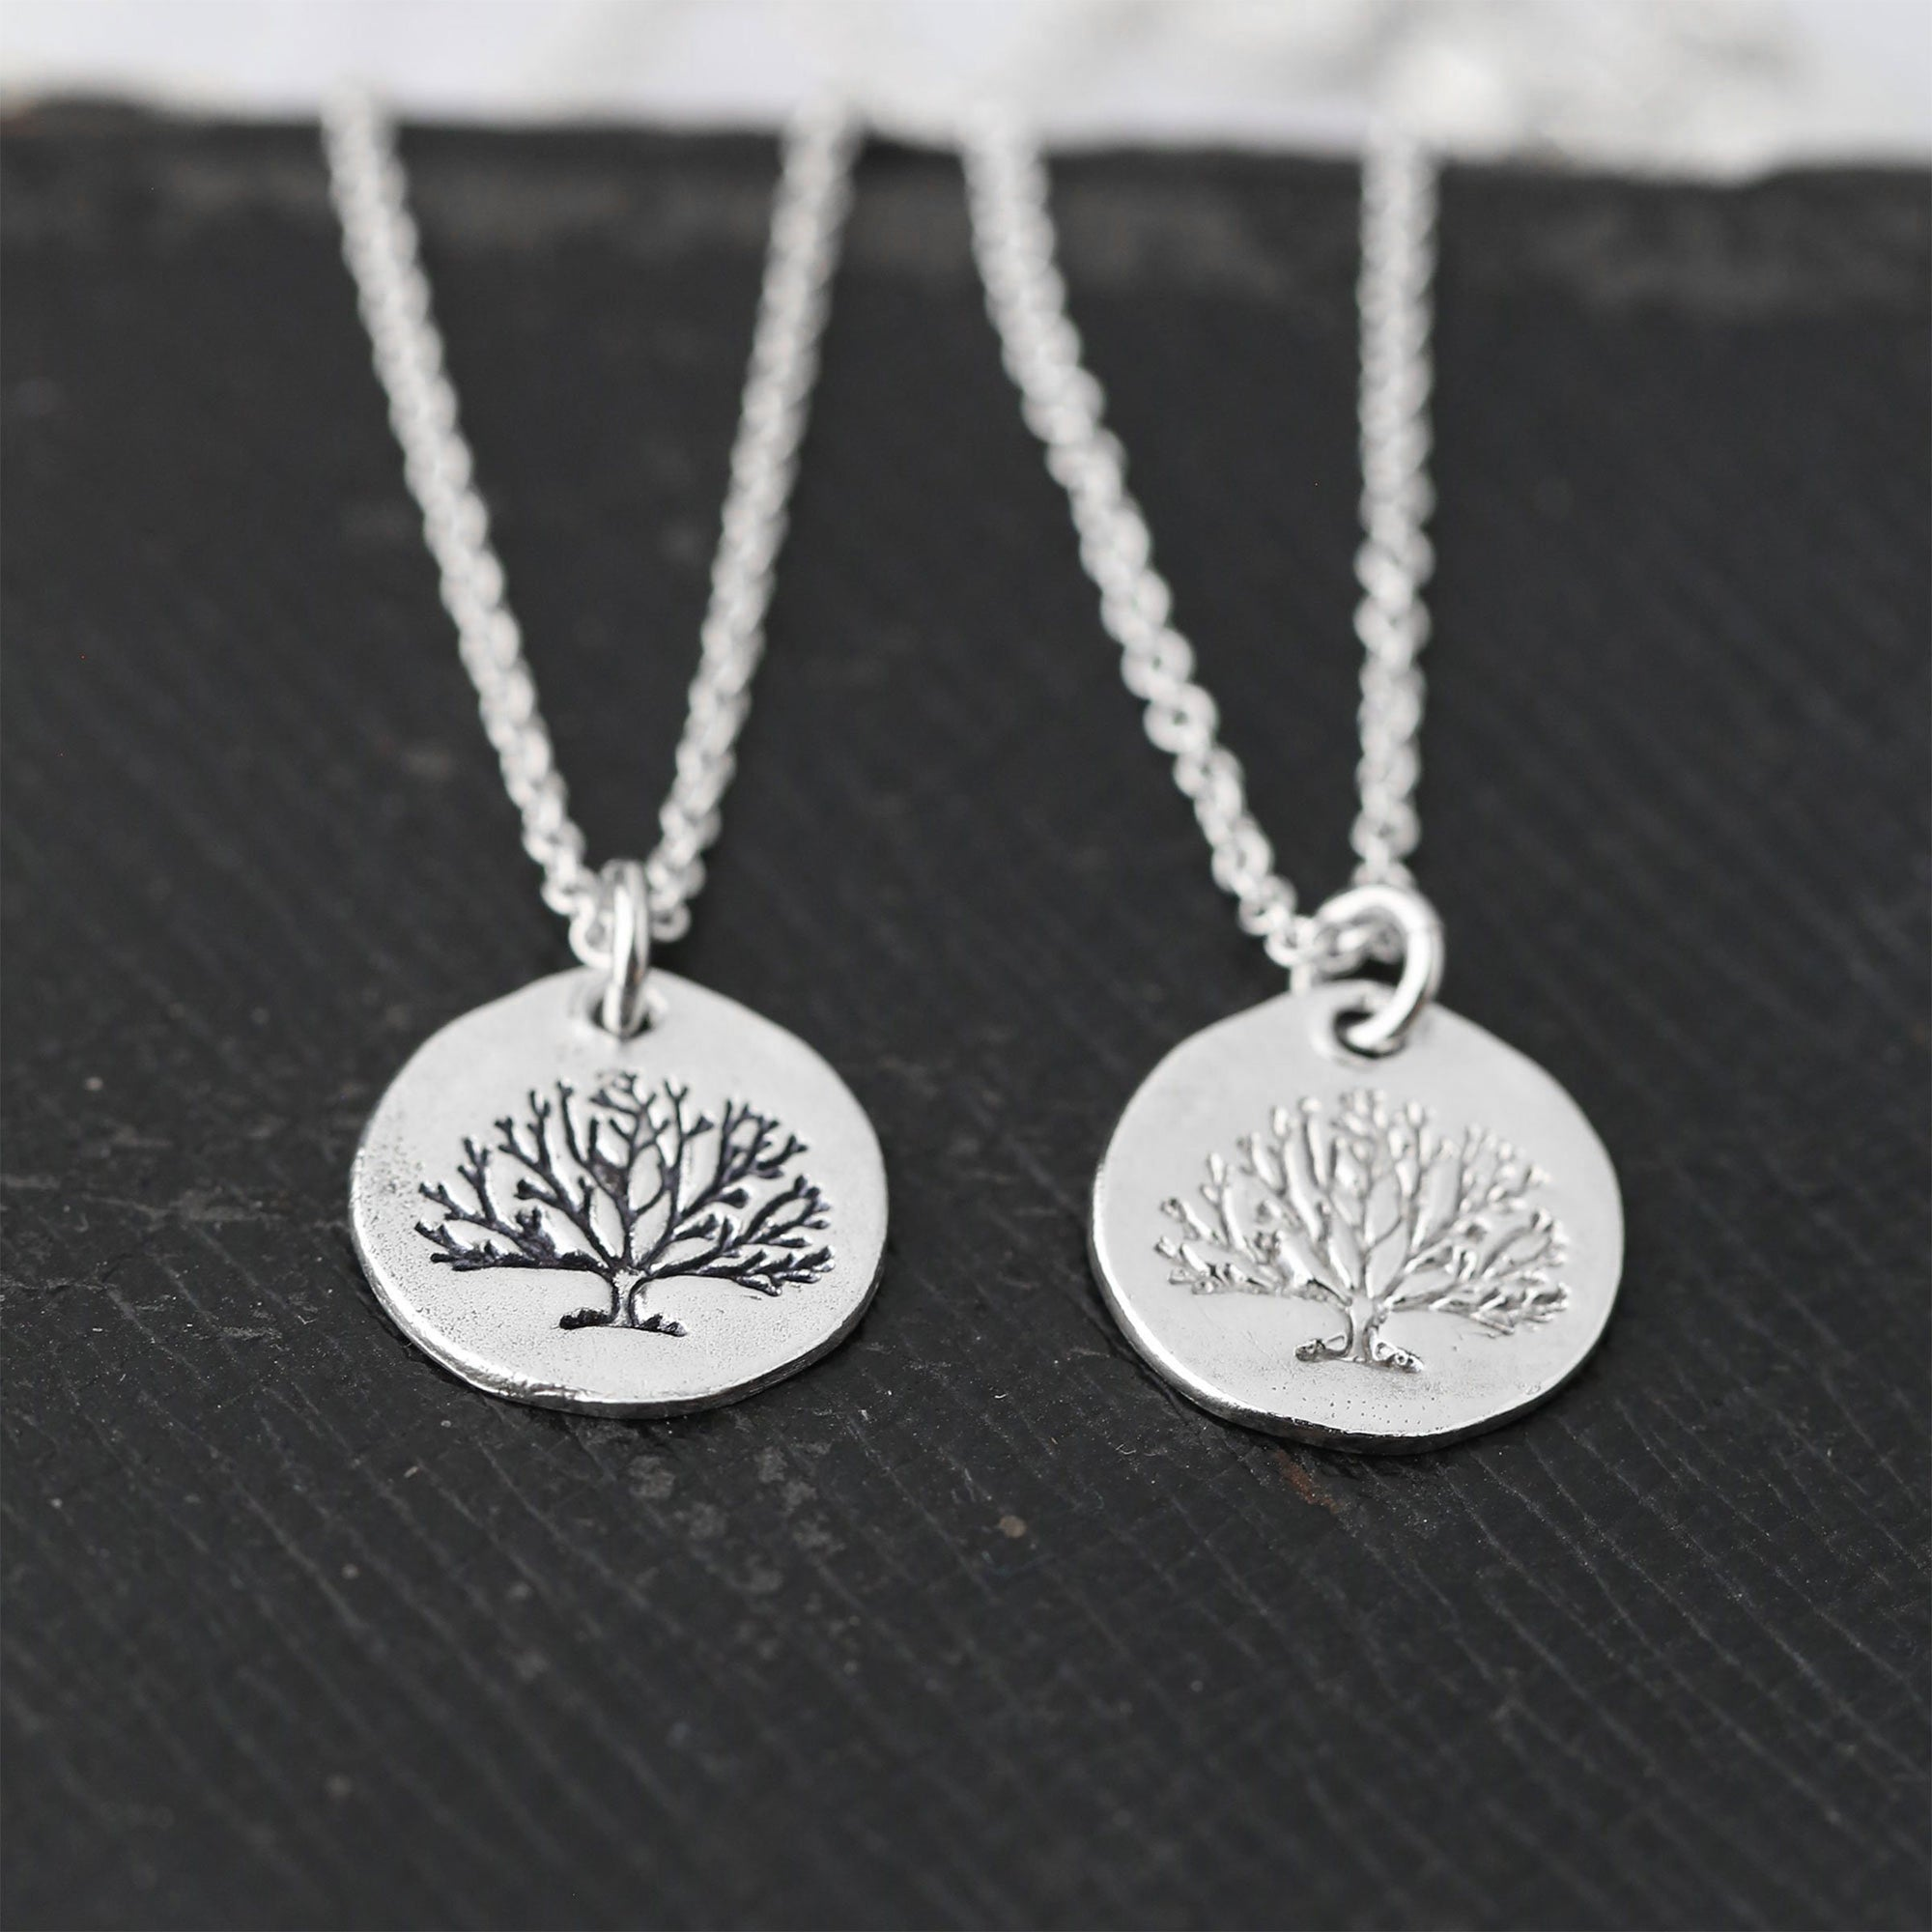 Tree of Life Necklace - Handmade Jewelry by Burnish